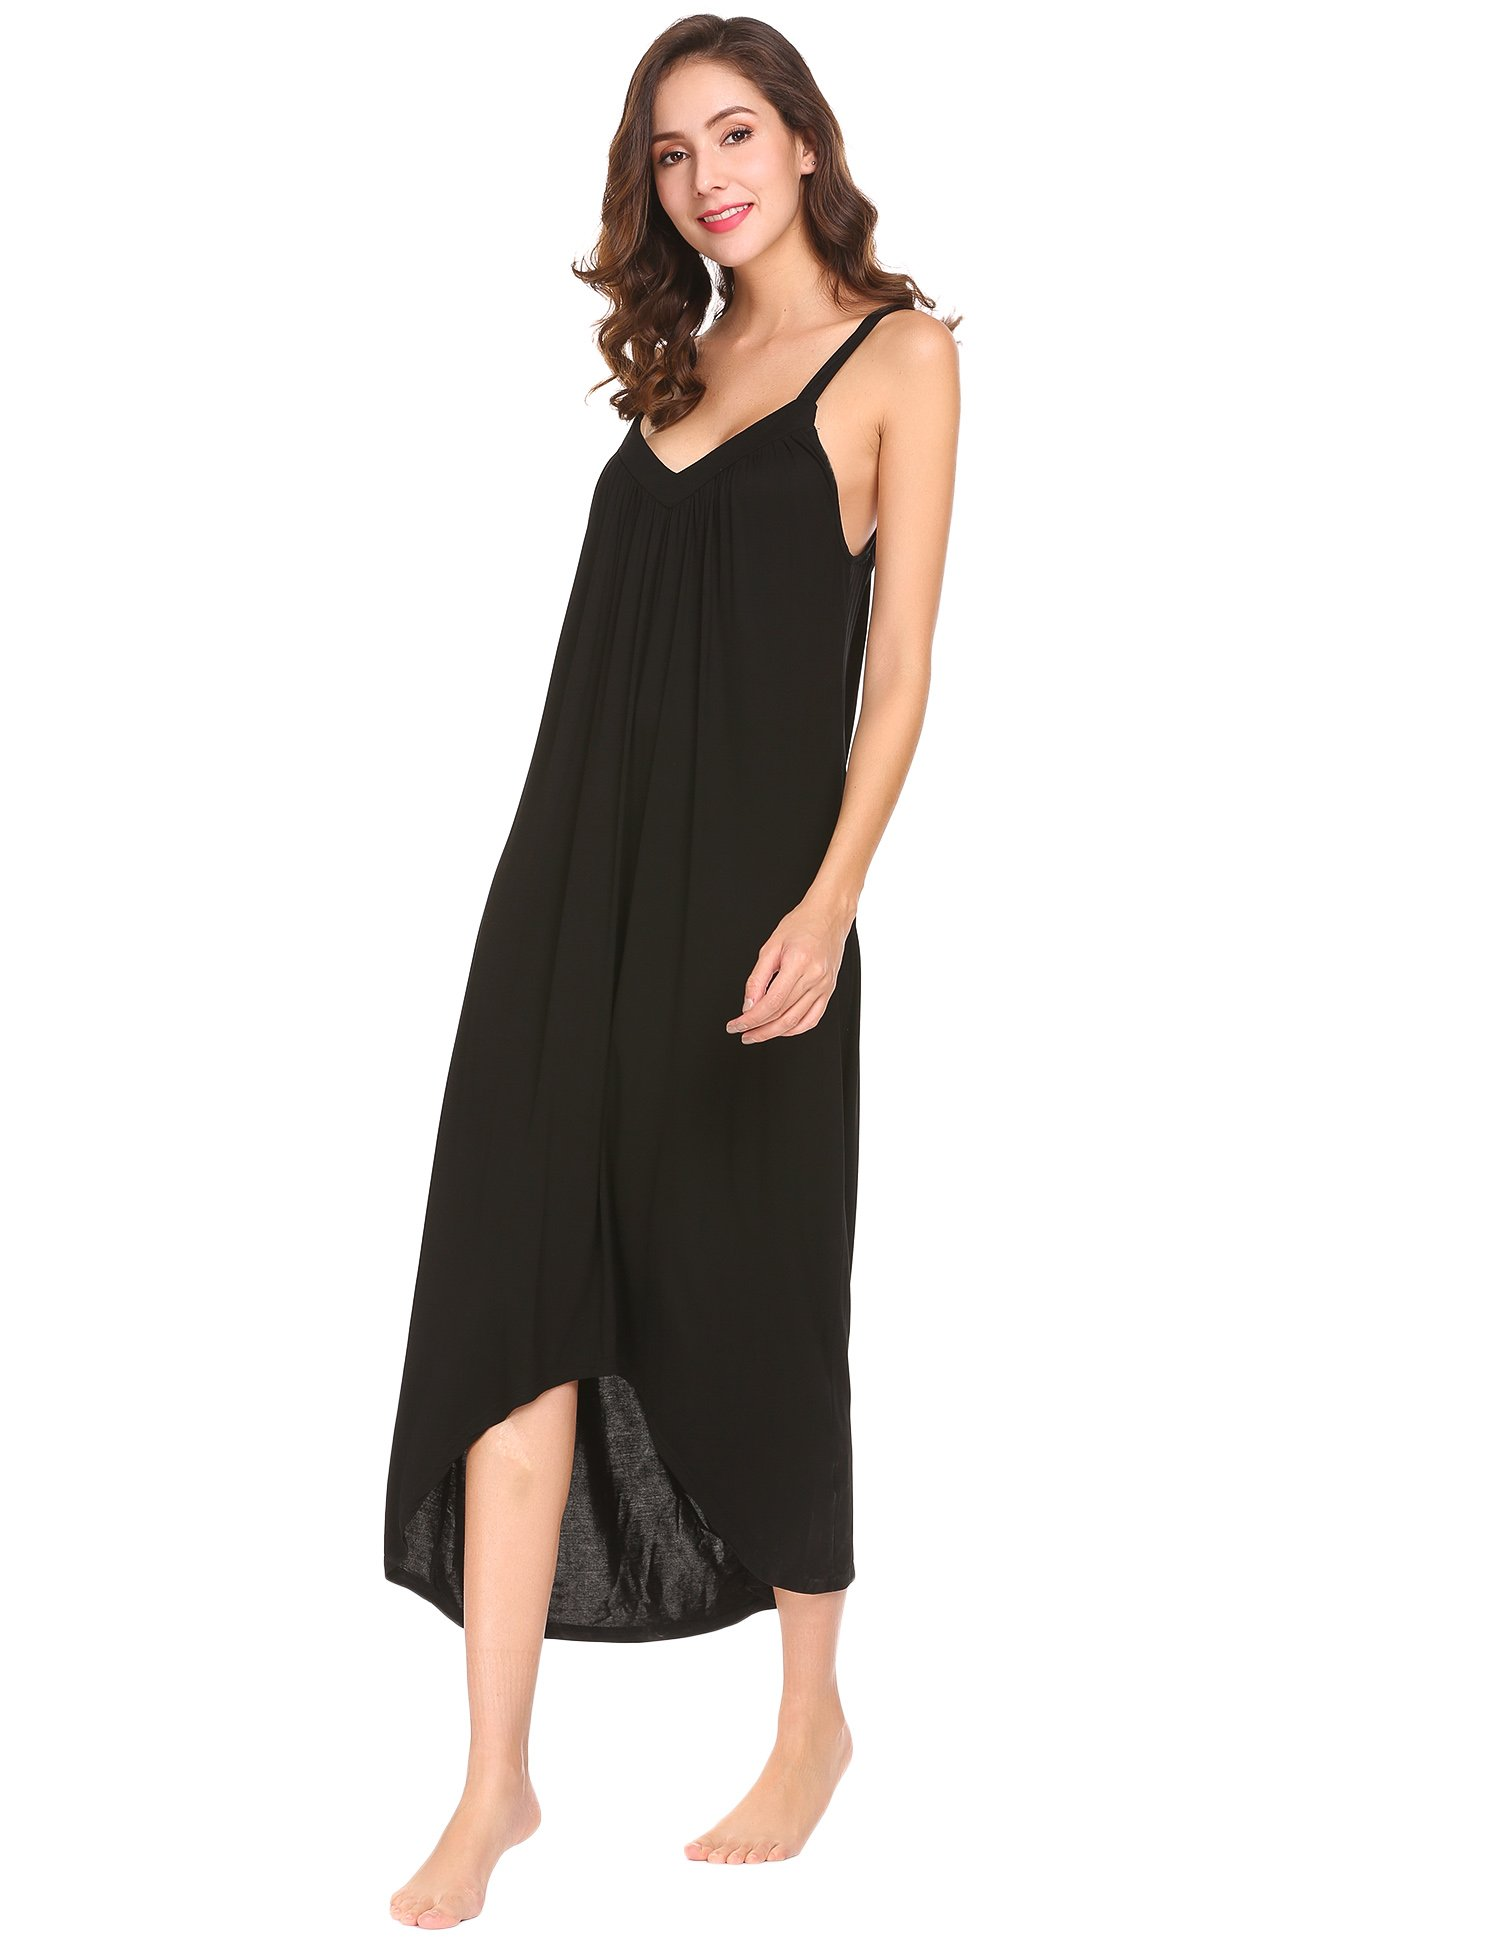 AVIIER Women Sleeveless Long Nightgown Summer Full Slip Night Dress Cotton Chemise